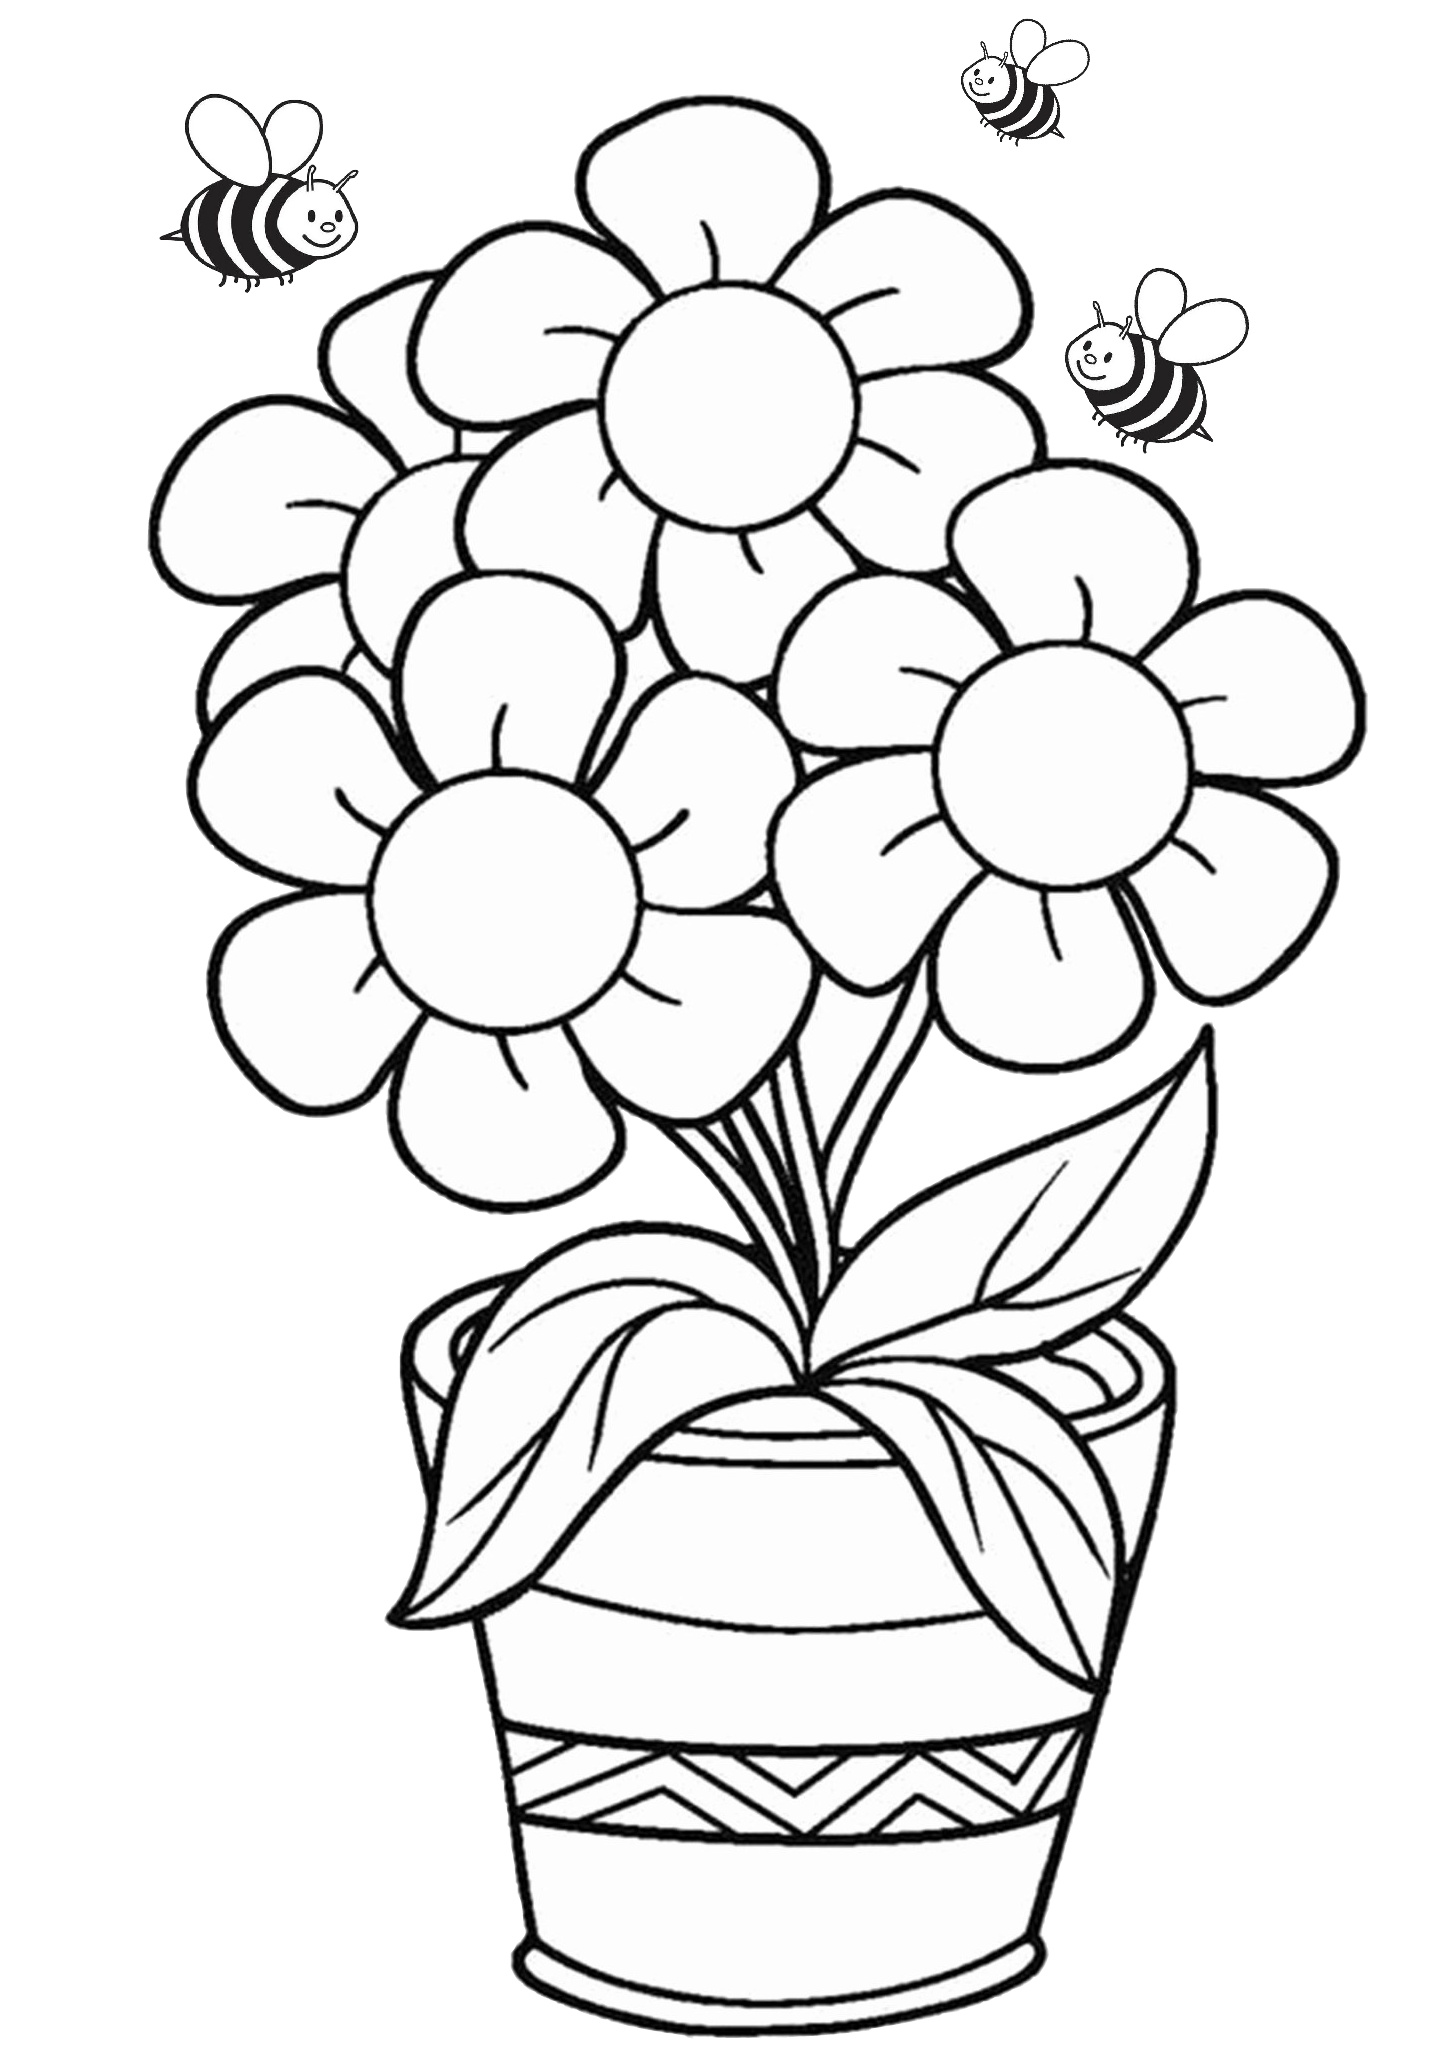 36 Printable Flower Coloring Pages For Adults Amp Kids